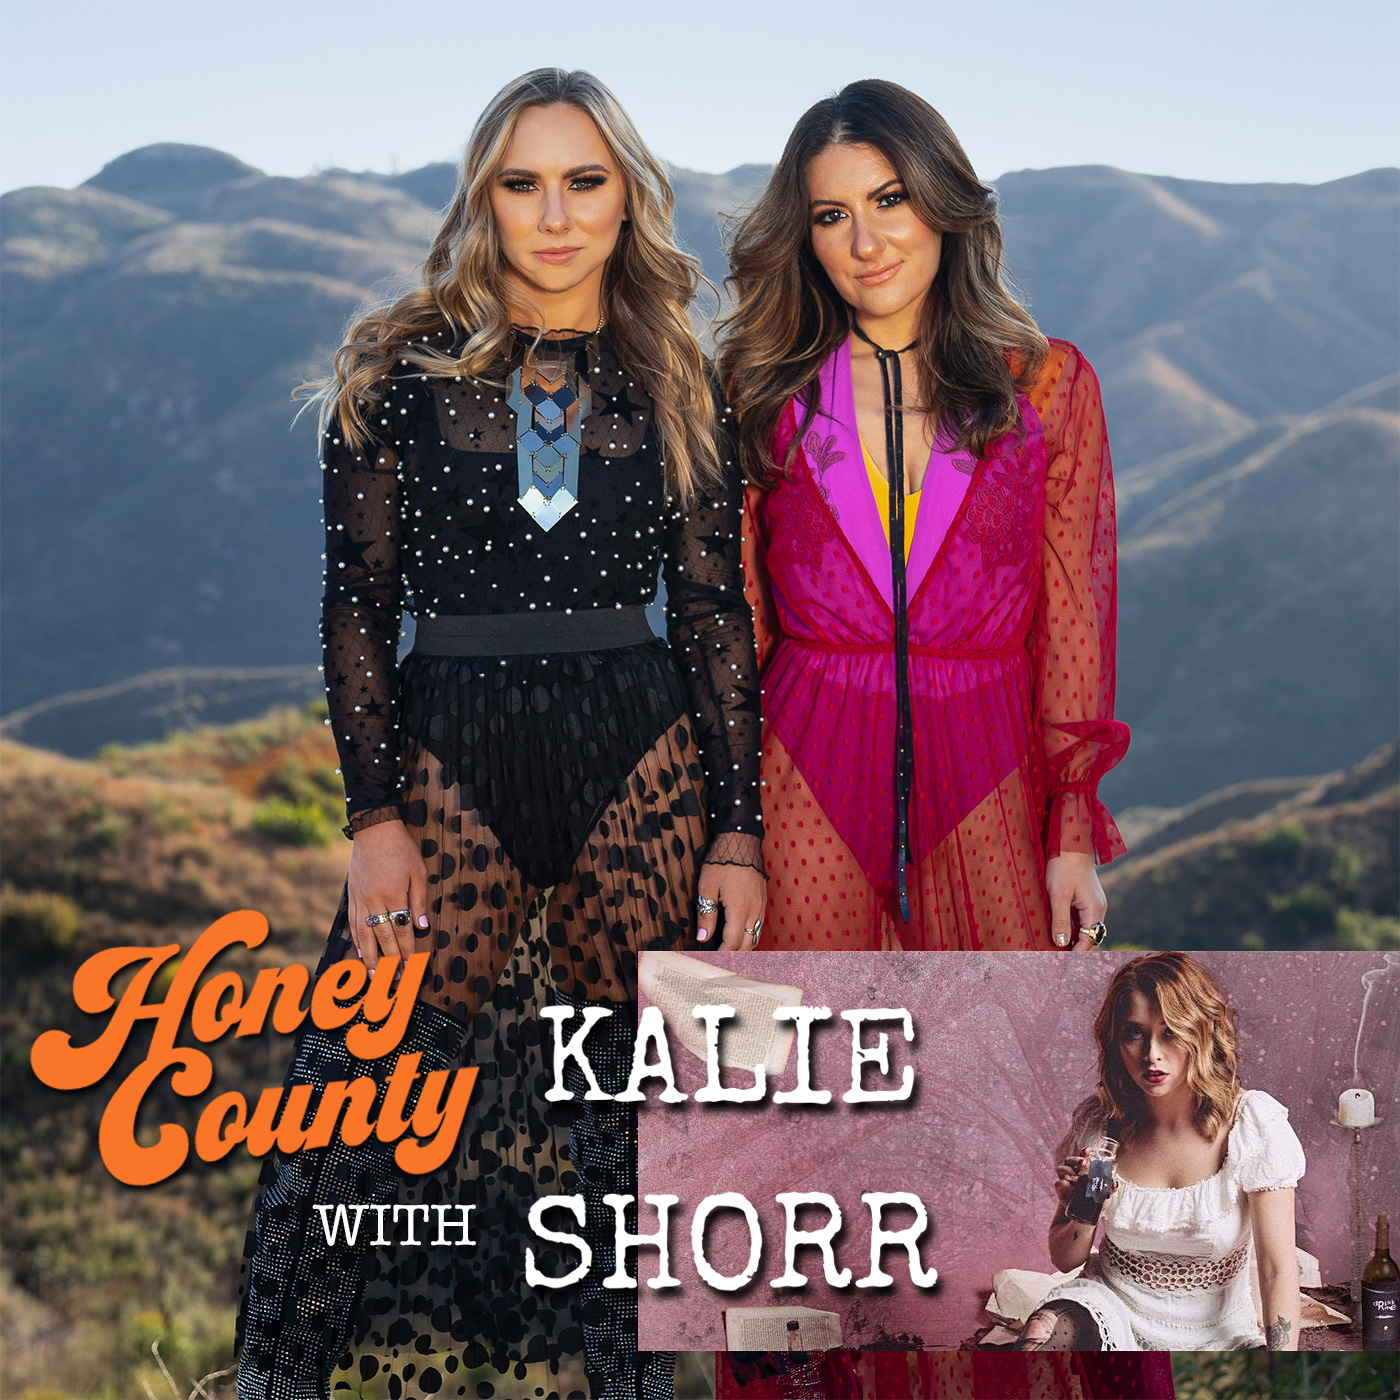 Honey County with Kalie Shorr